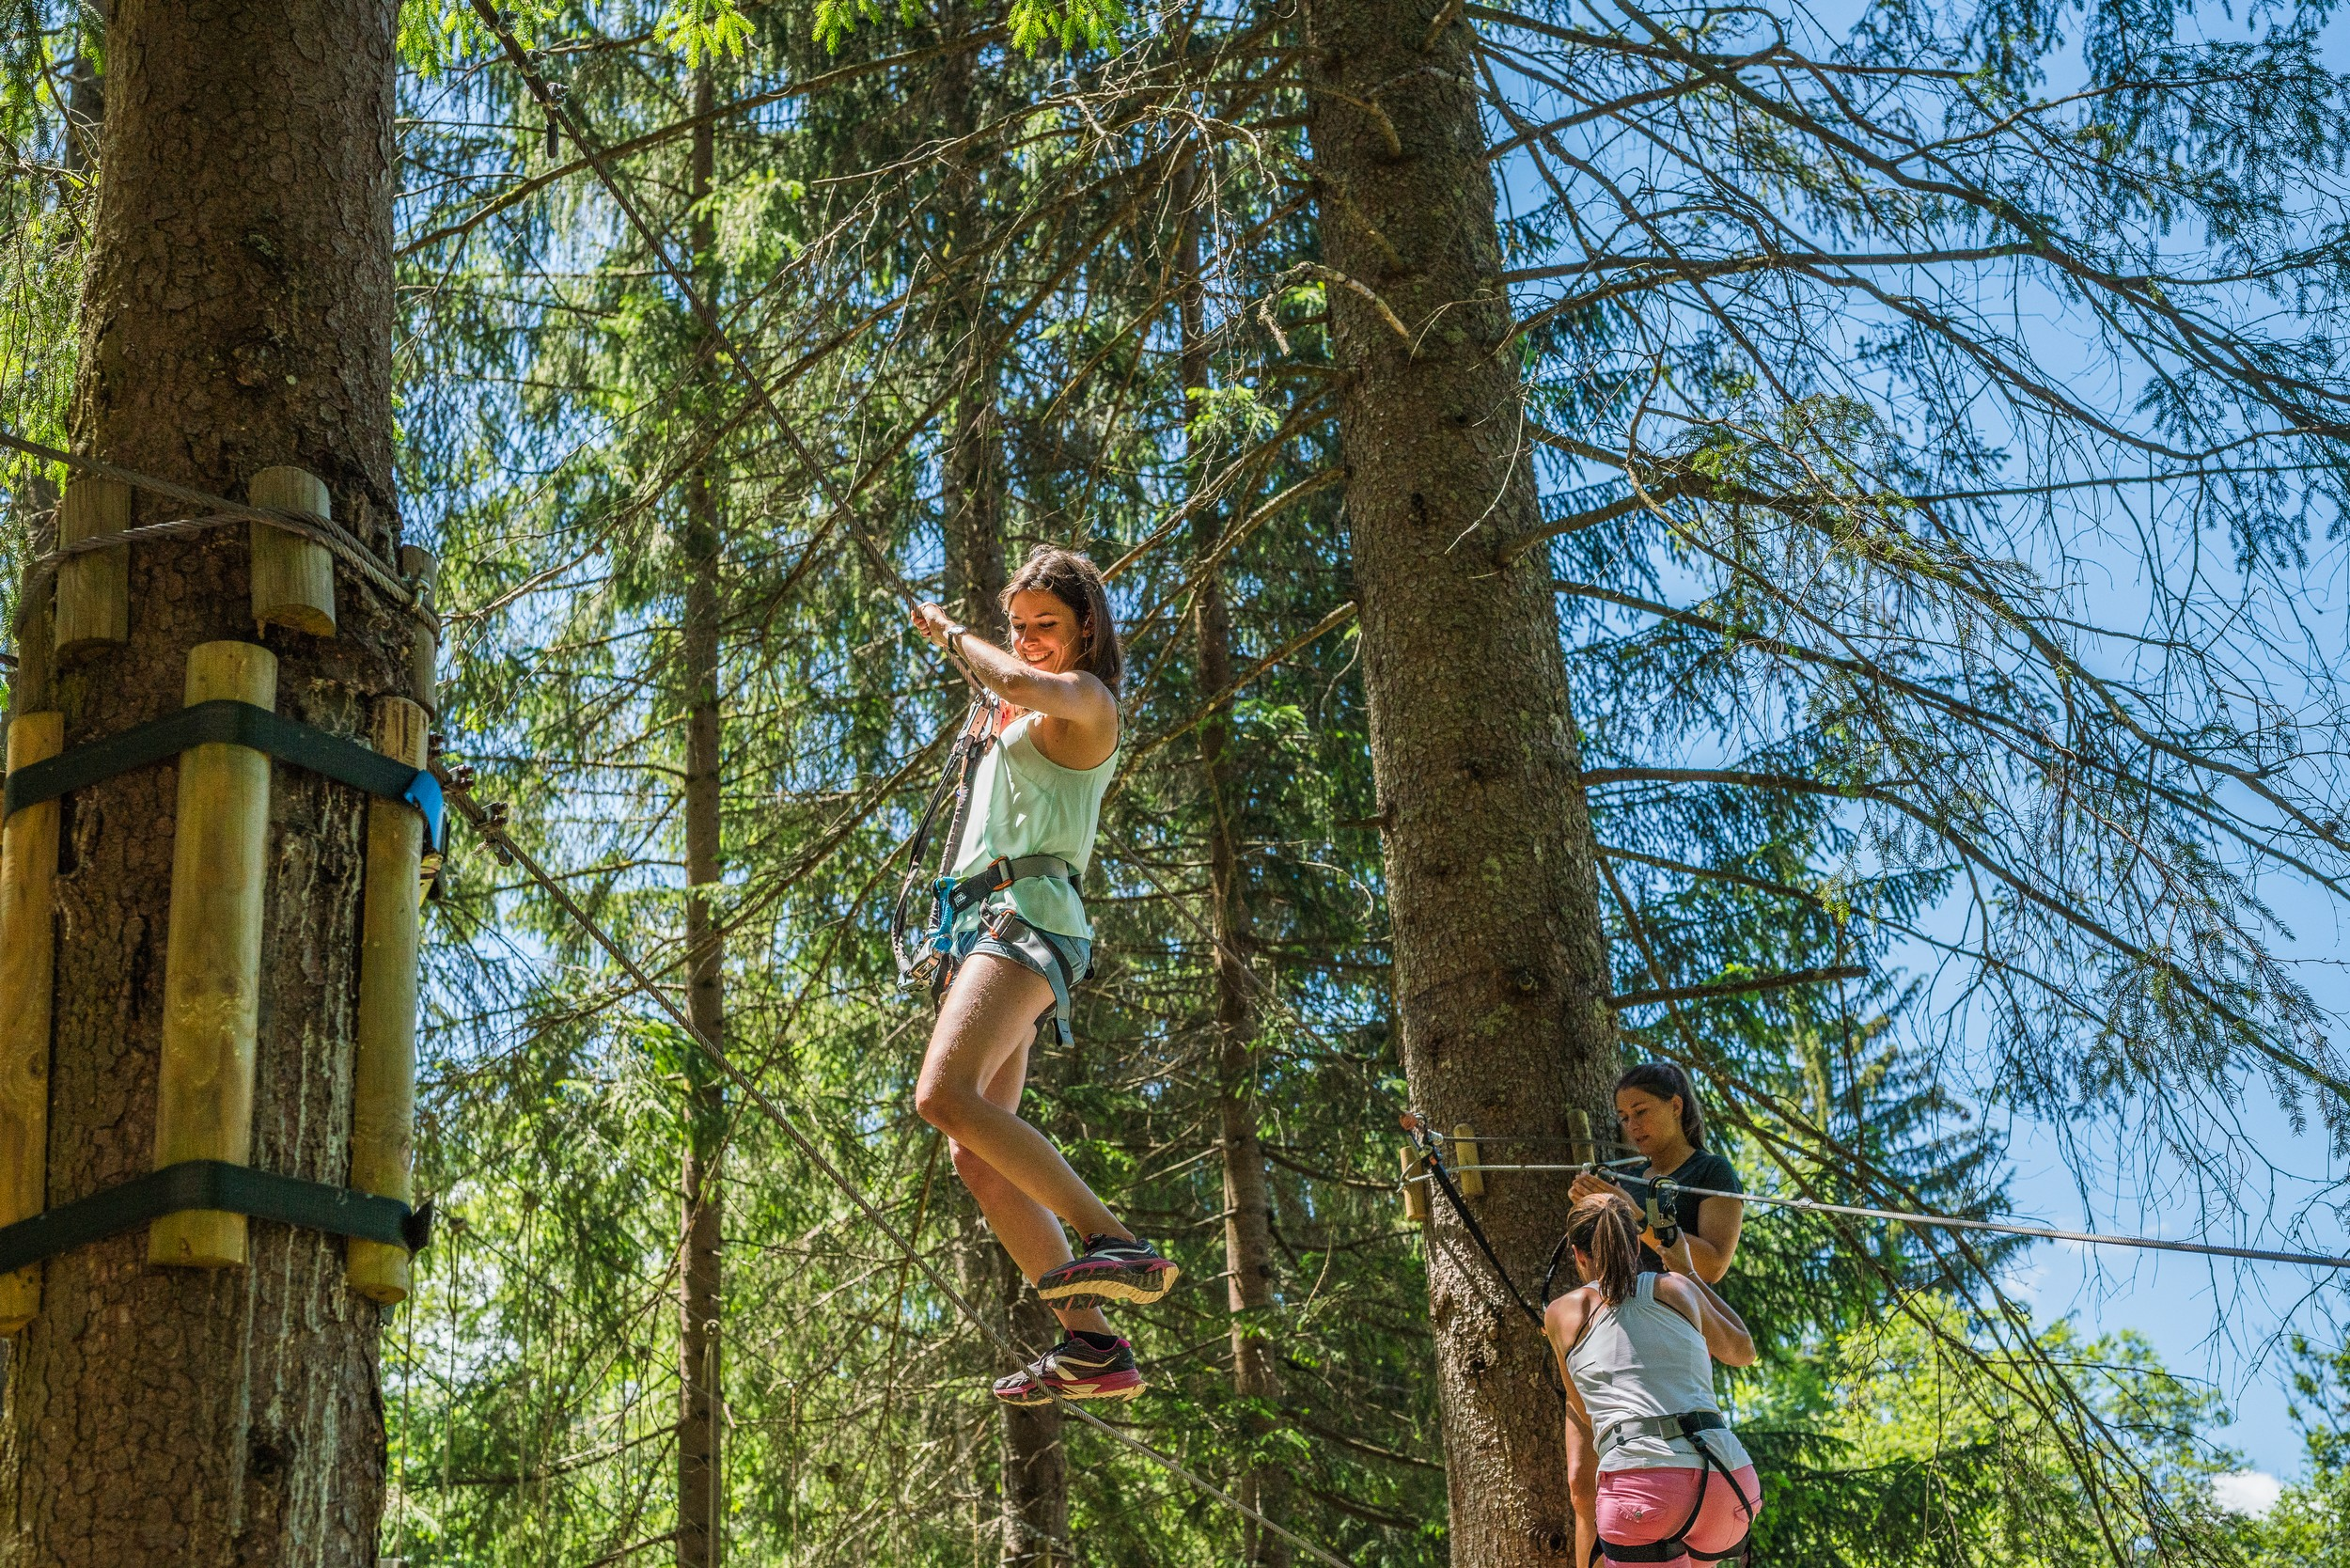 Top 10 activities for good summer holidays in the Portes du Soleil area - © Ollie Godbold